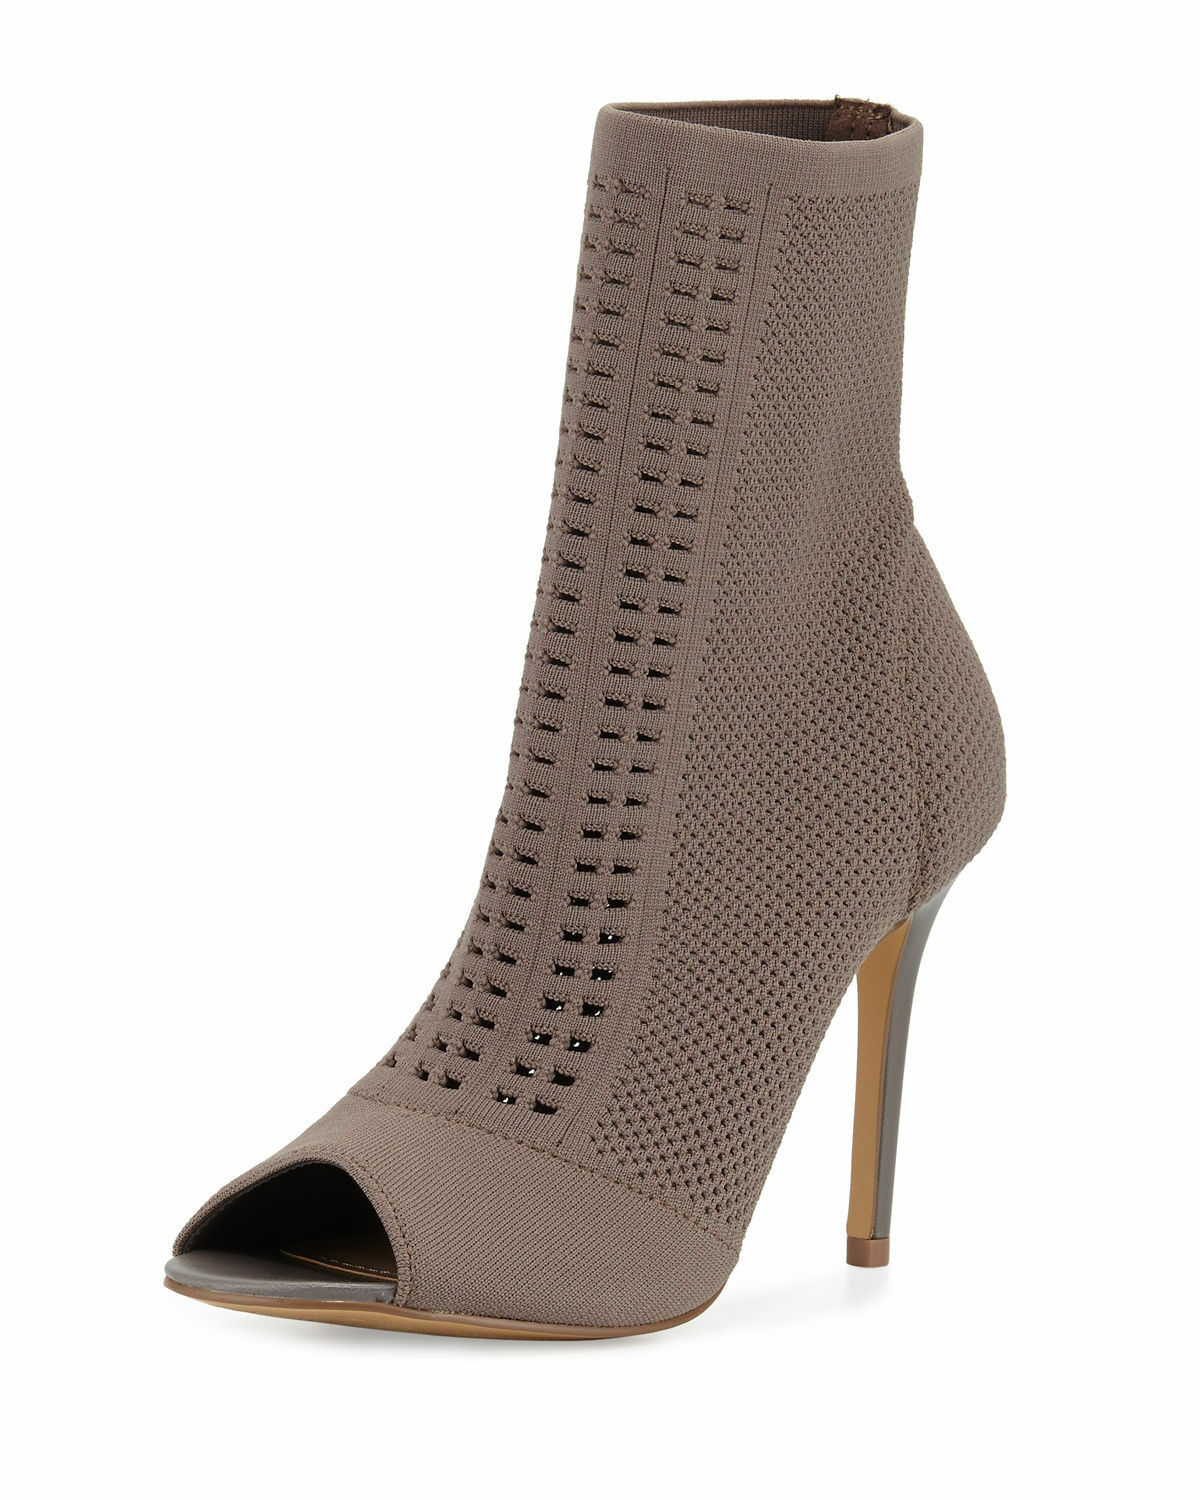 Charles by Charles David Rebellious Mesh-Knit Open-Toe new Bootie Größe 9.5 or 10 new Open-Toe b03f77